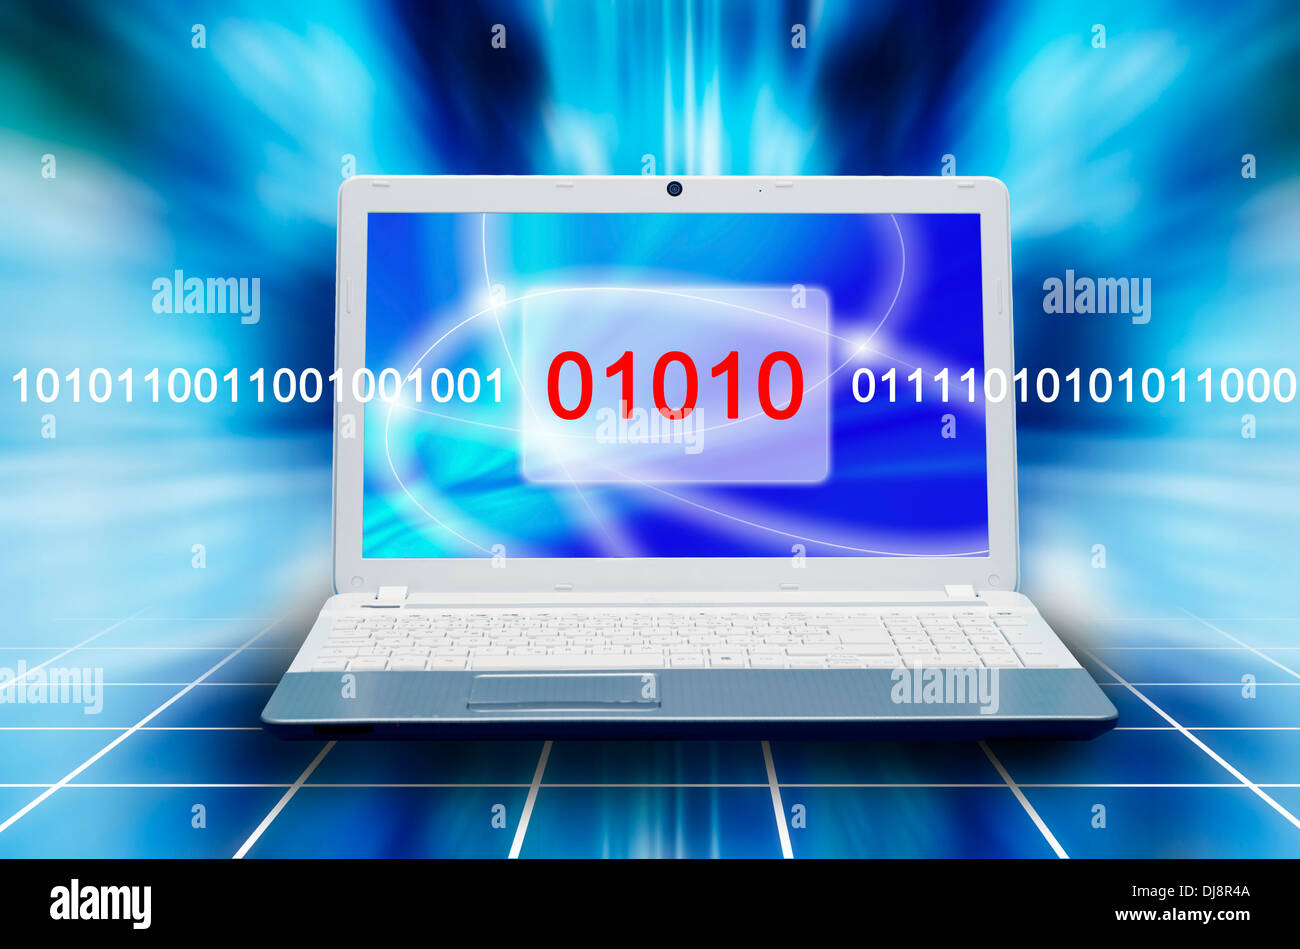 concept for computer security and data scanning - Stock Image